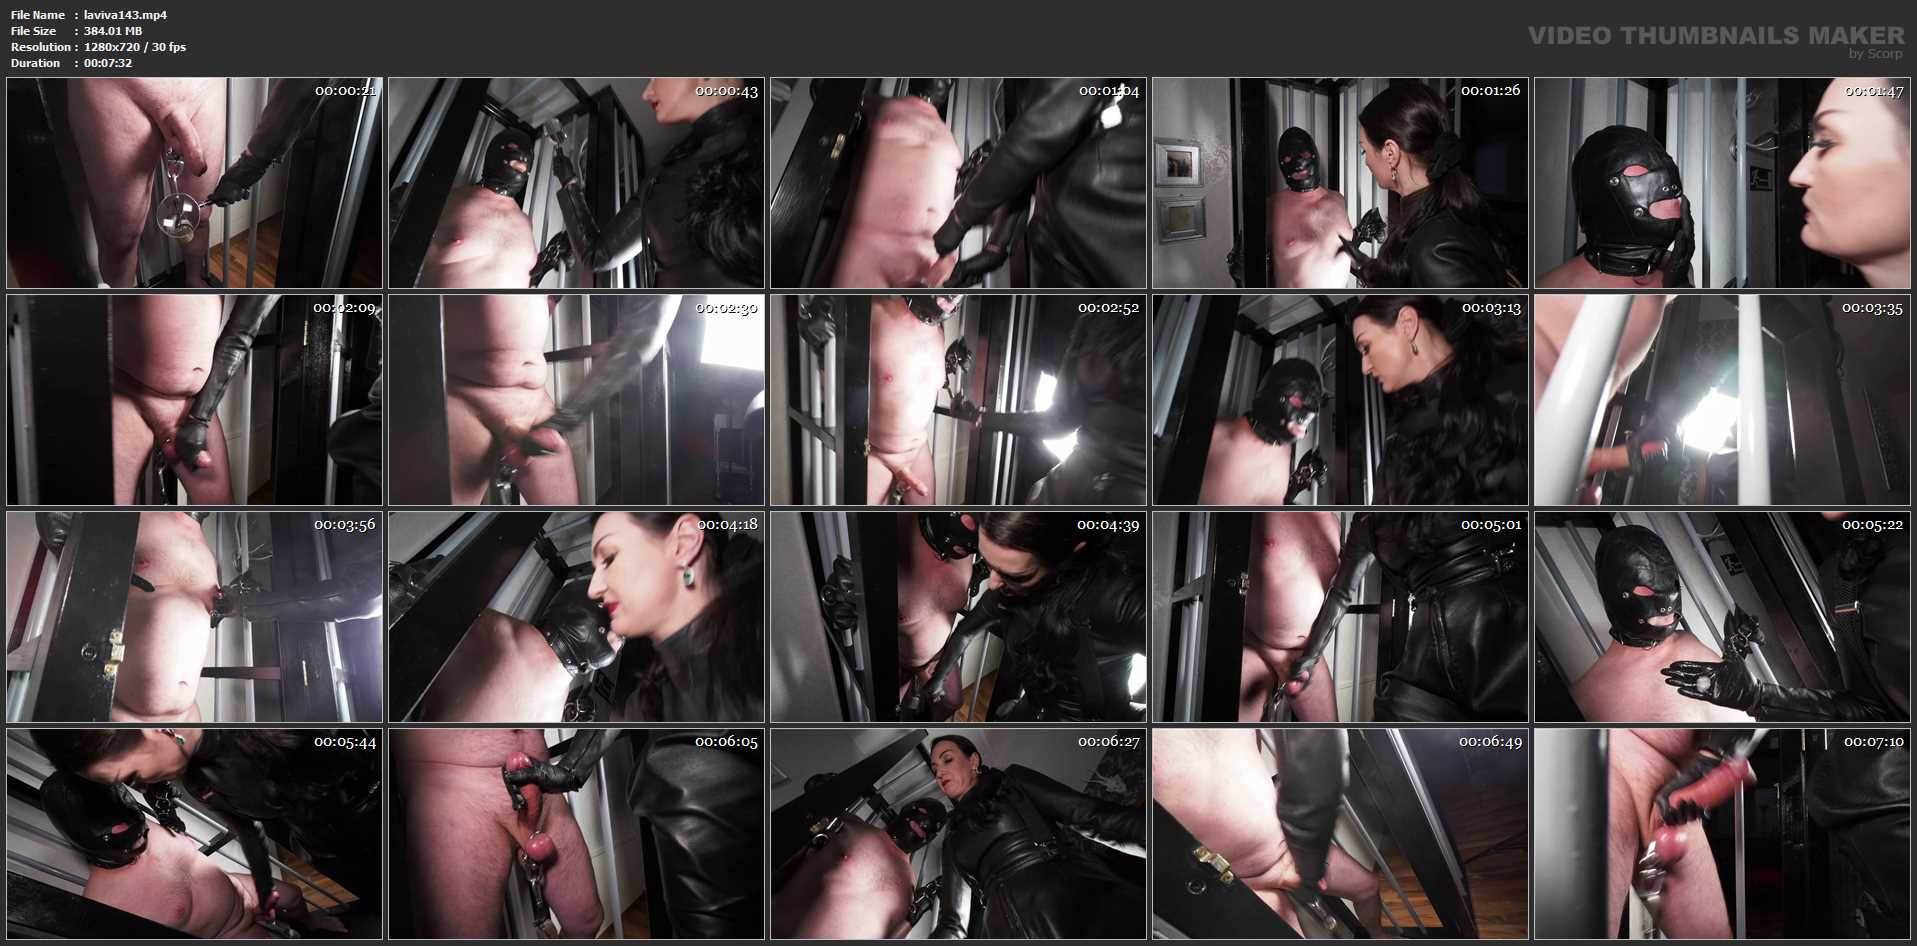 Lady Victoria Valente In Scene: Heavy play in the cage Part 1 - LADYVICTORIAVALENTE / REAL GERMAN MISTRESS - HD/720p/MP4